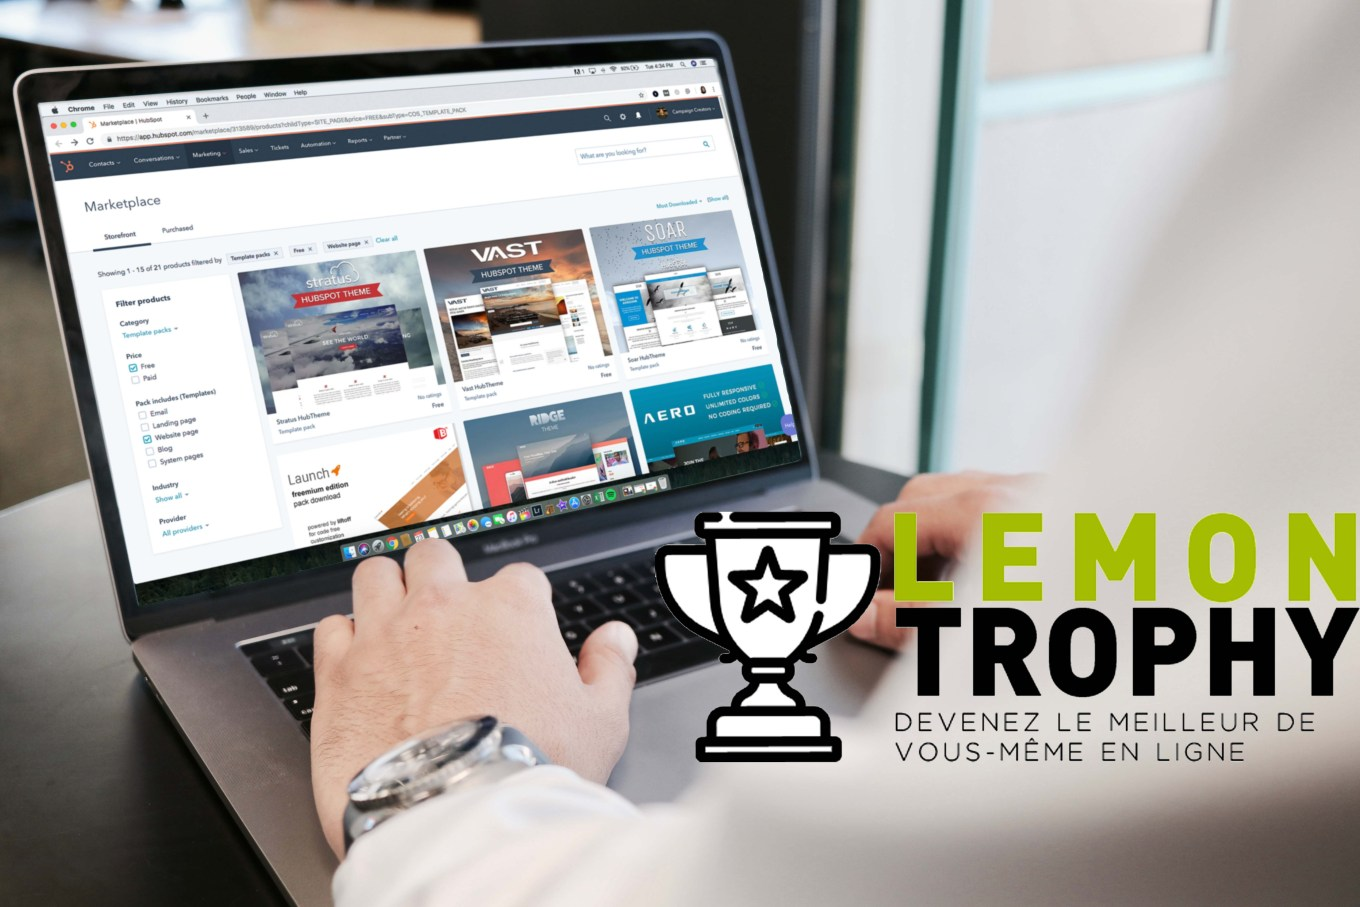 Lemon Trophy by SKEMA Ventures and Lemon Interactive